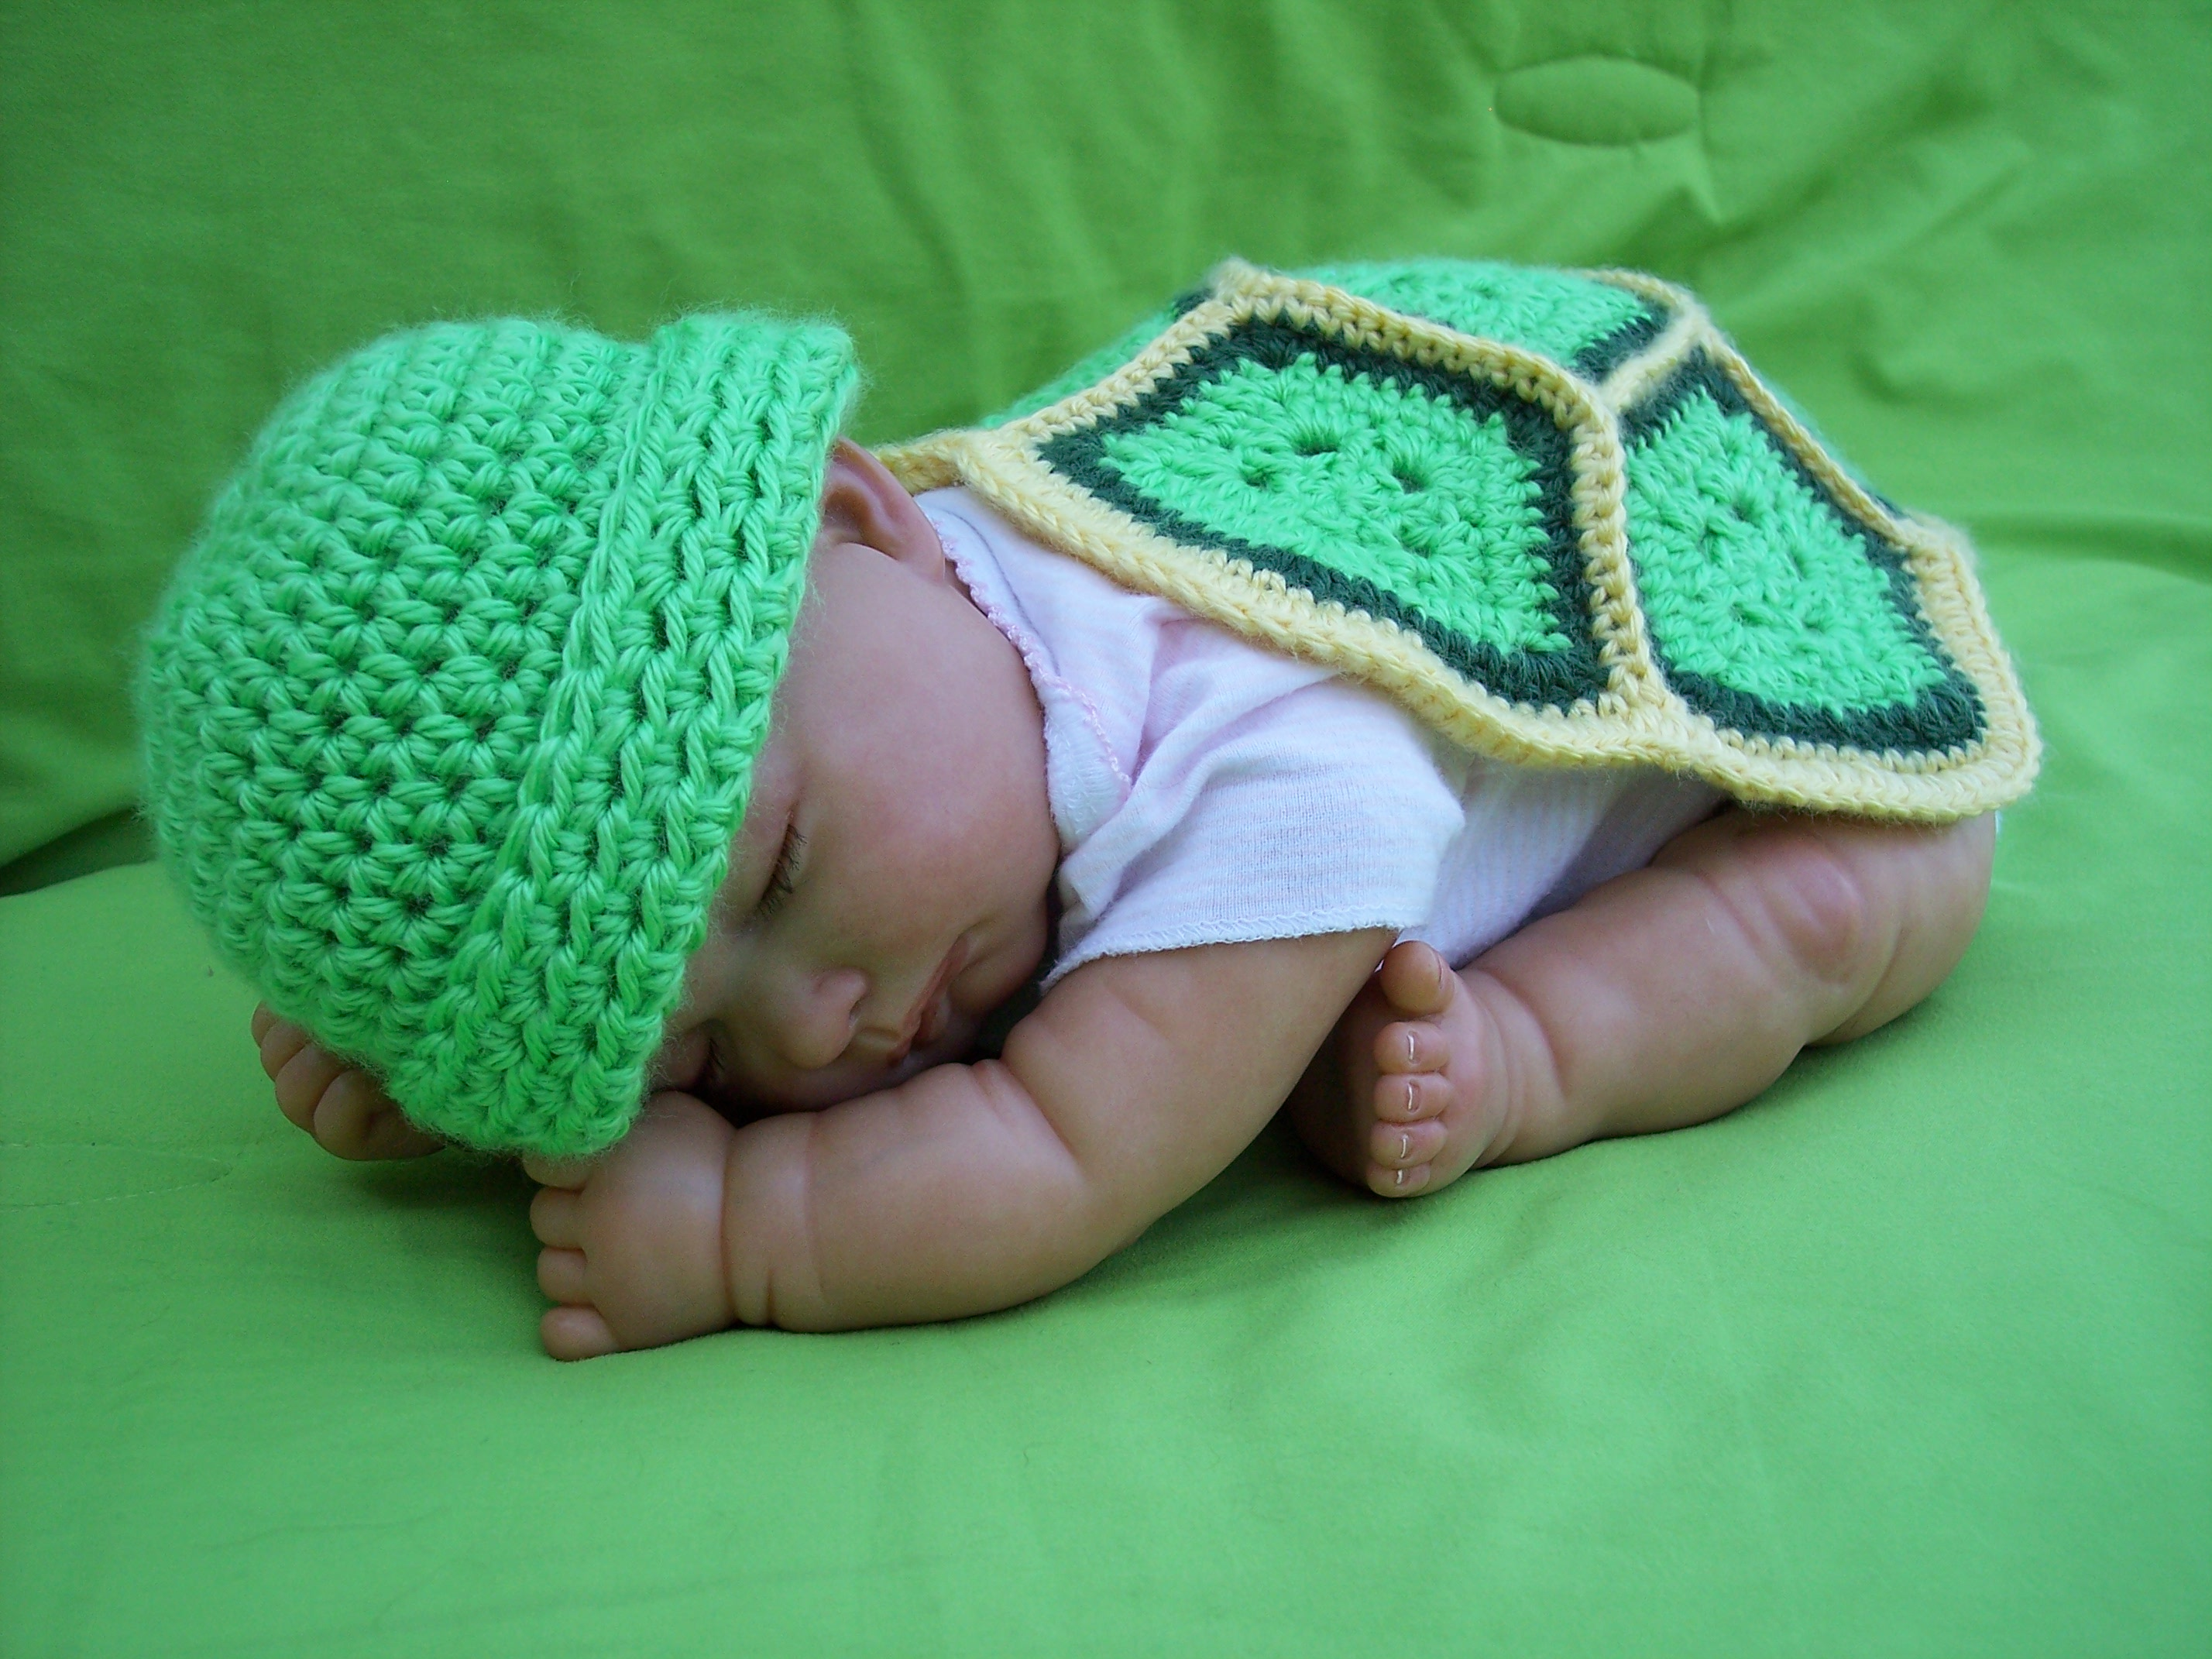 Turtle Love Crochet Pattern - Stitch11